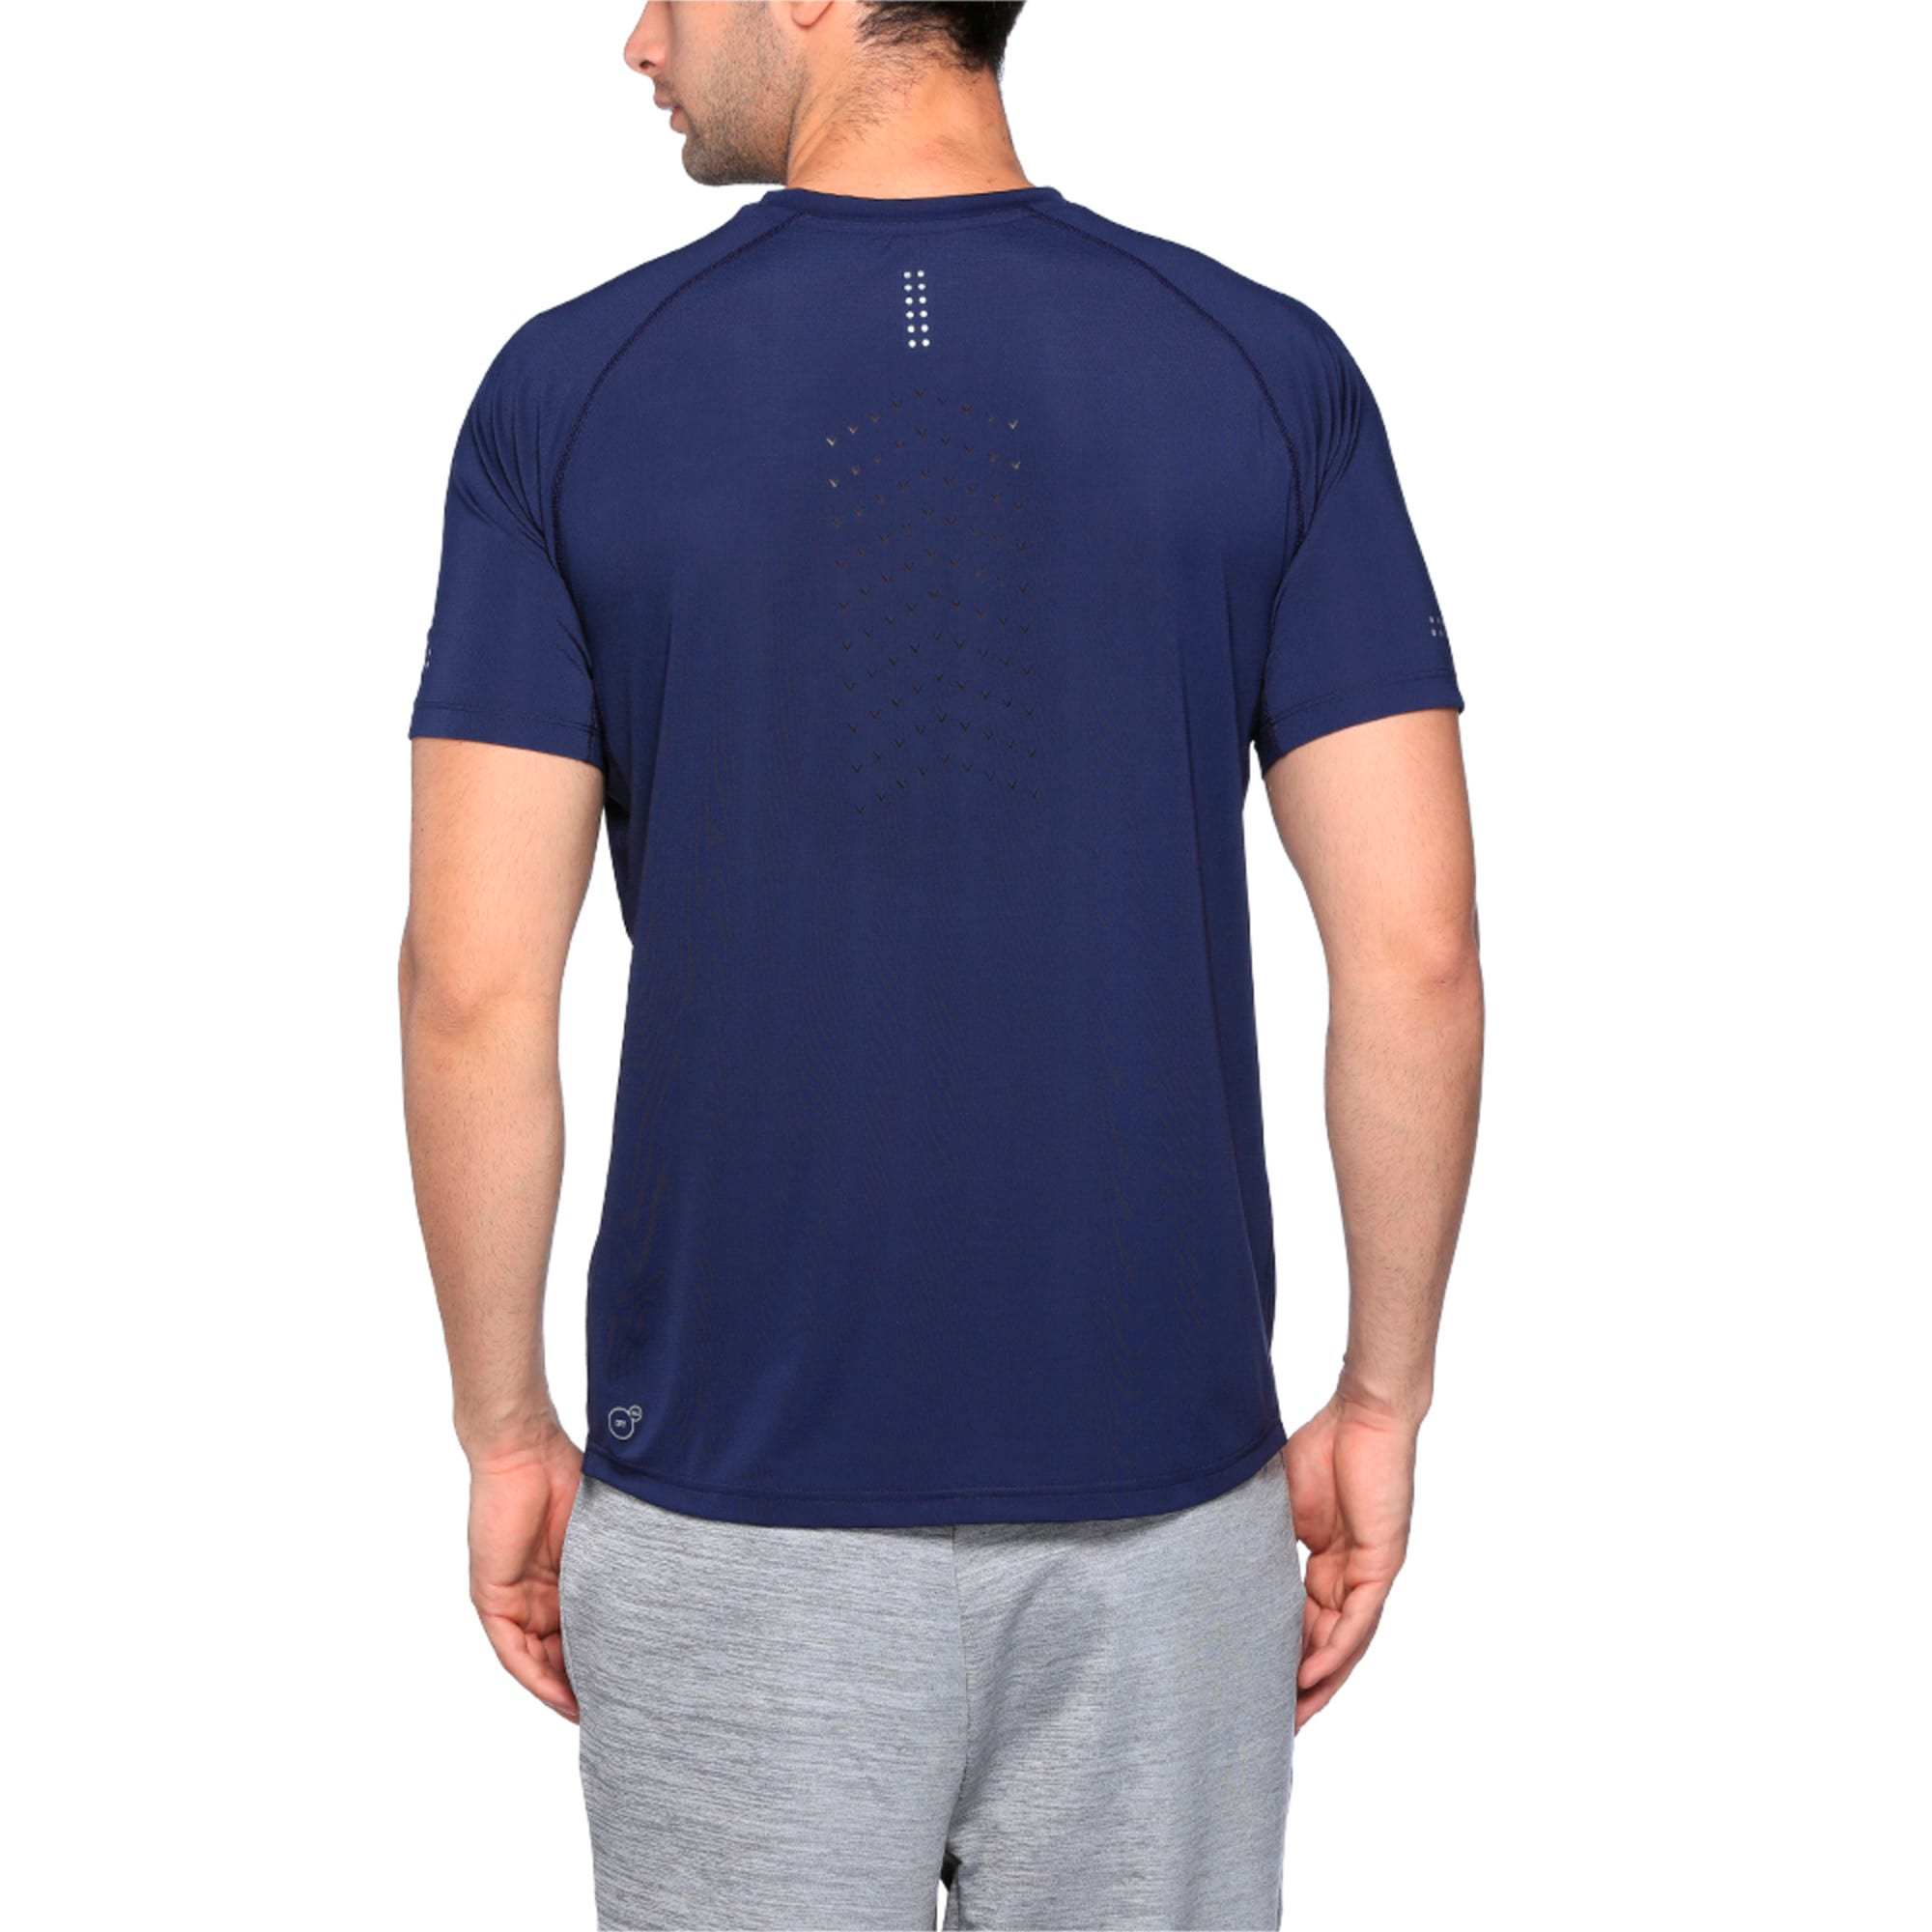 Running Men's PWRCOOL Speed T-Shirt, Peacoat, large-IND